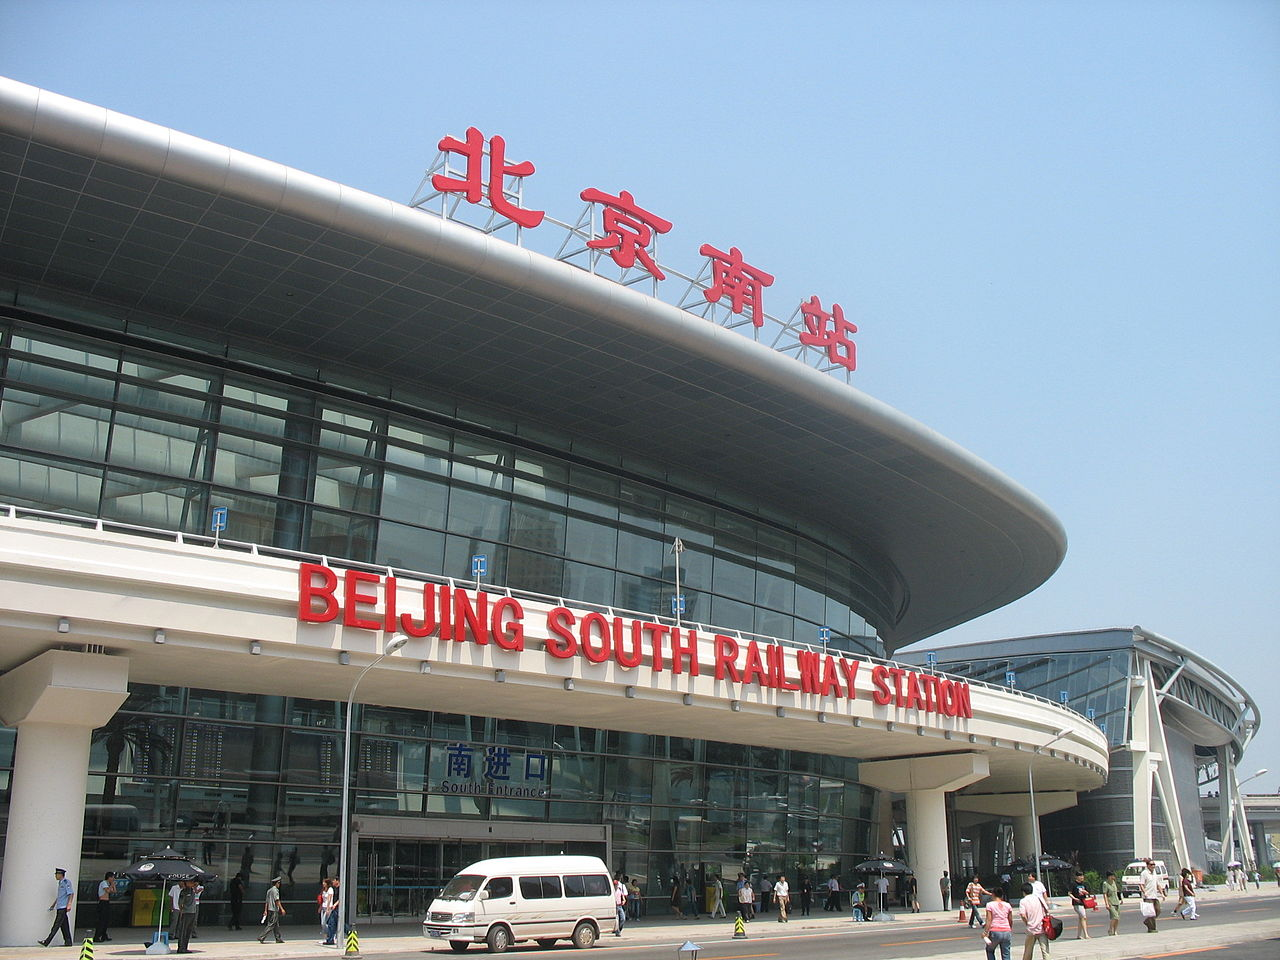 1280px-beijing_south_railway_station.JPG